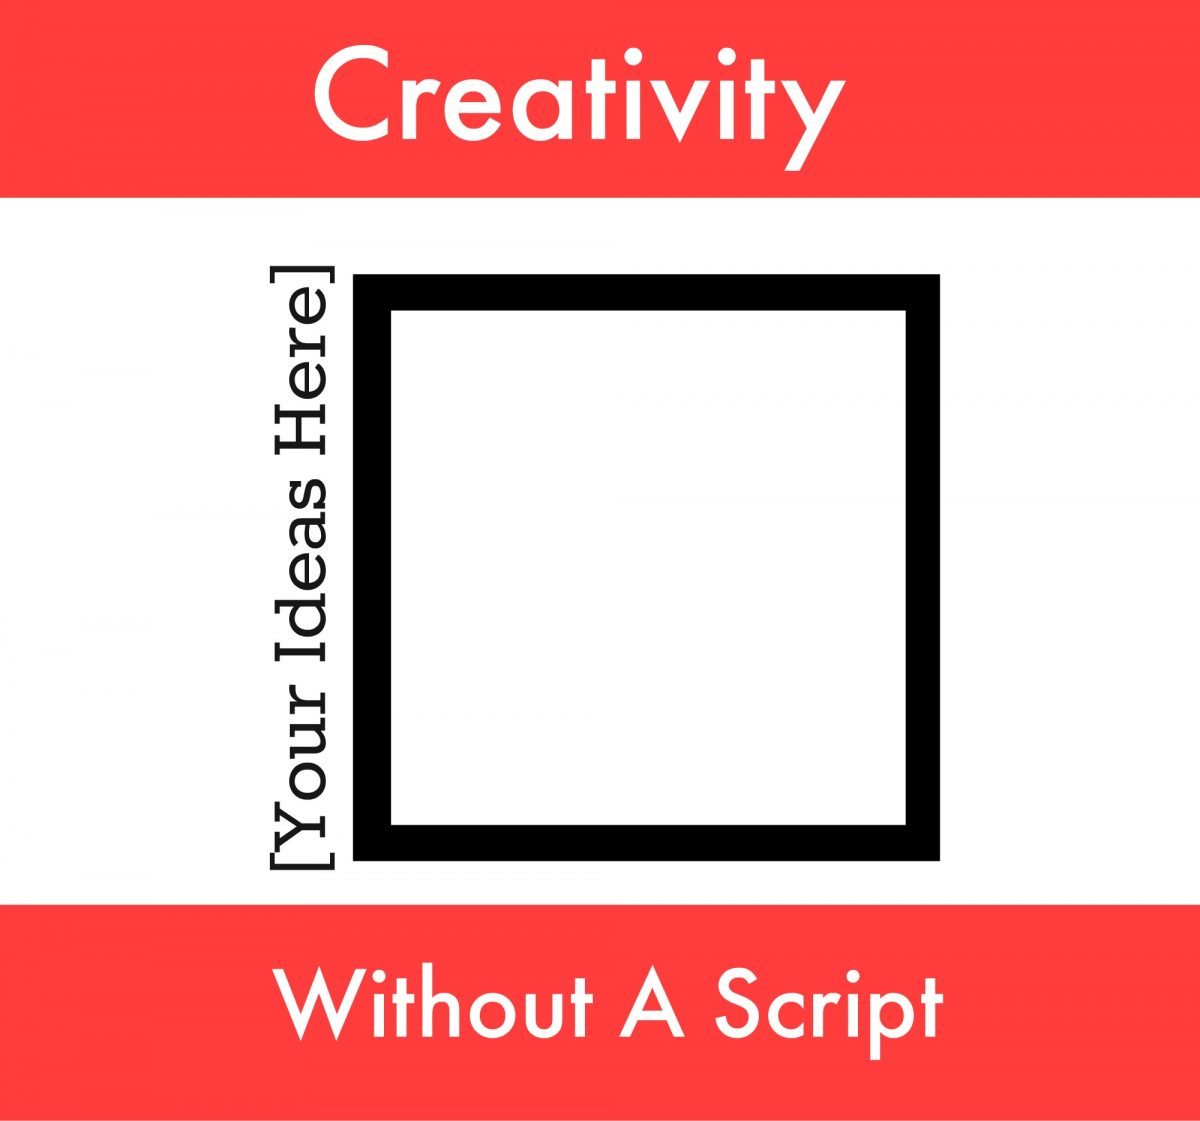 Creativity Without A Script